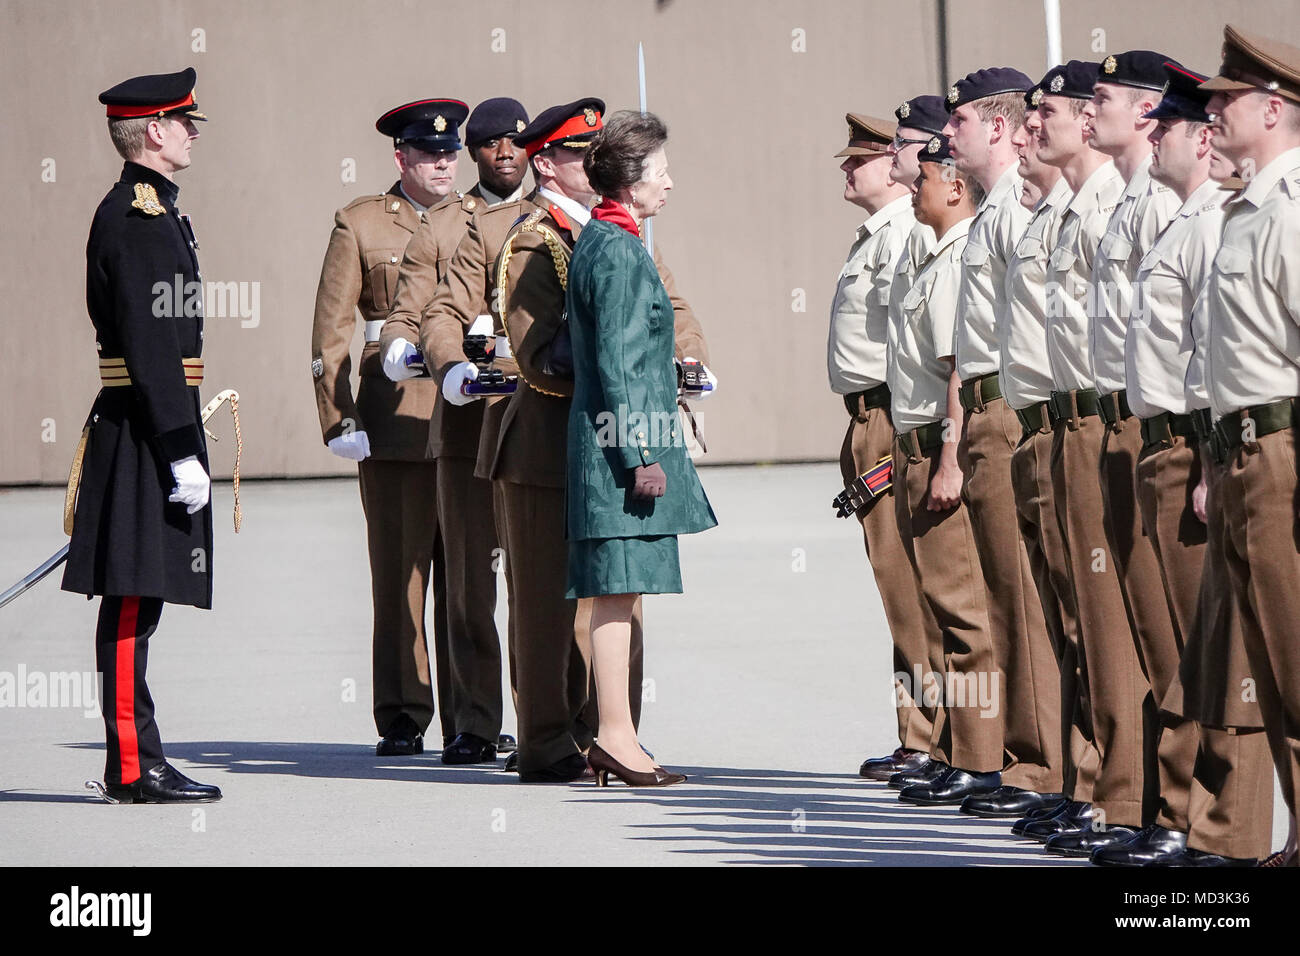 Pirbright Camp, Brookwood. 18th April 2018. The 25th anniversary of the British Army's largest Corps, the Royal Logistics Corps. Her Royal Highness will inspect the first rank of troops before issuing stable belts to 36 of the soldiers on parade. Following the parade The Princess Royal will then be introduced to members of the Corps and their families and learn a little of the recent events and activities regarding the Corps' Silver Jubilee. Her Royal Highness will then join a group photograph on the parade square. Credit: james jagger/Alamy Live News - Stock Image